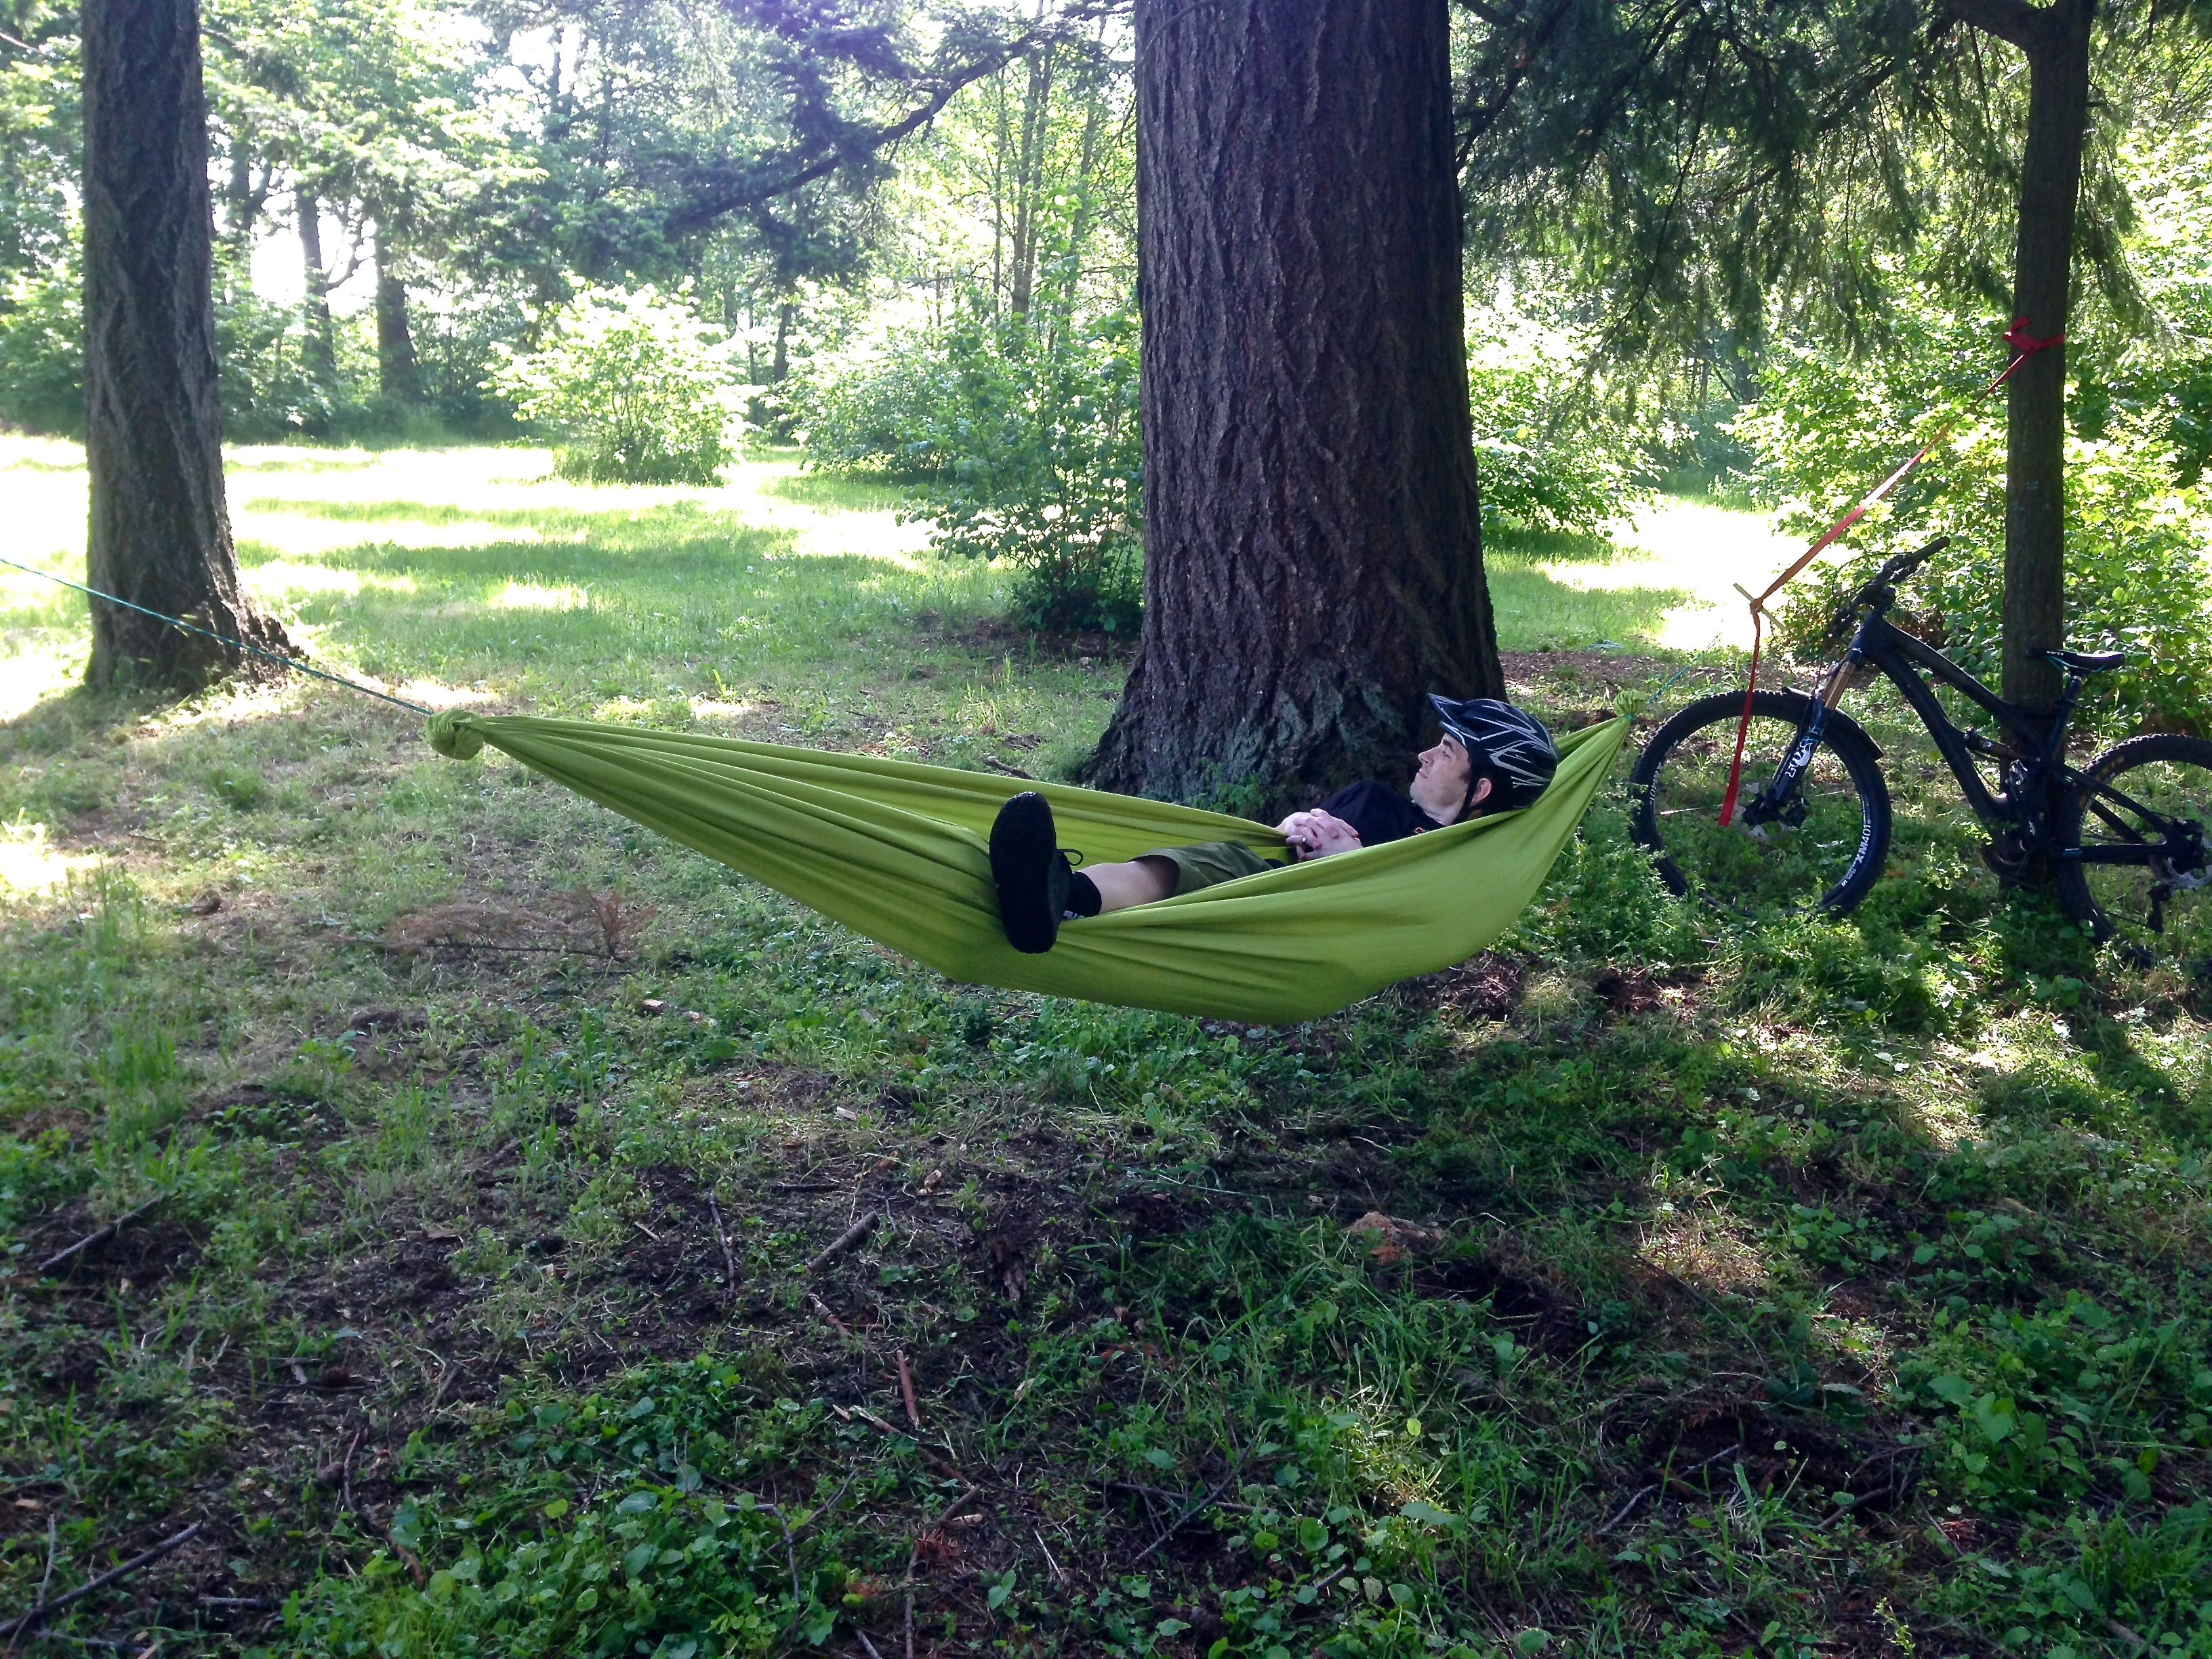 central tropical nature flower green free jungle relaxing en park images water hammock play bacab photo outdoor belize hammocks person america people travel equipment paradise vacation